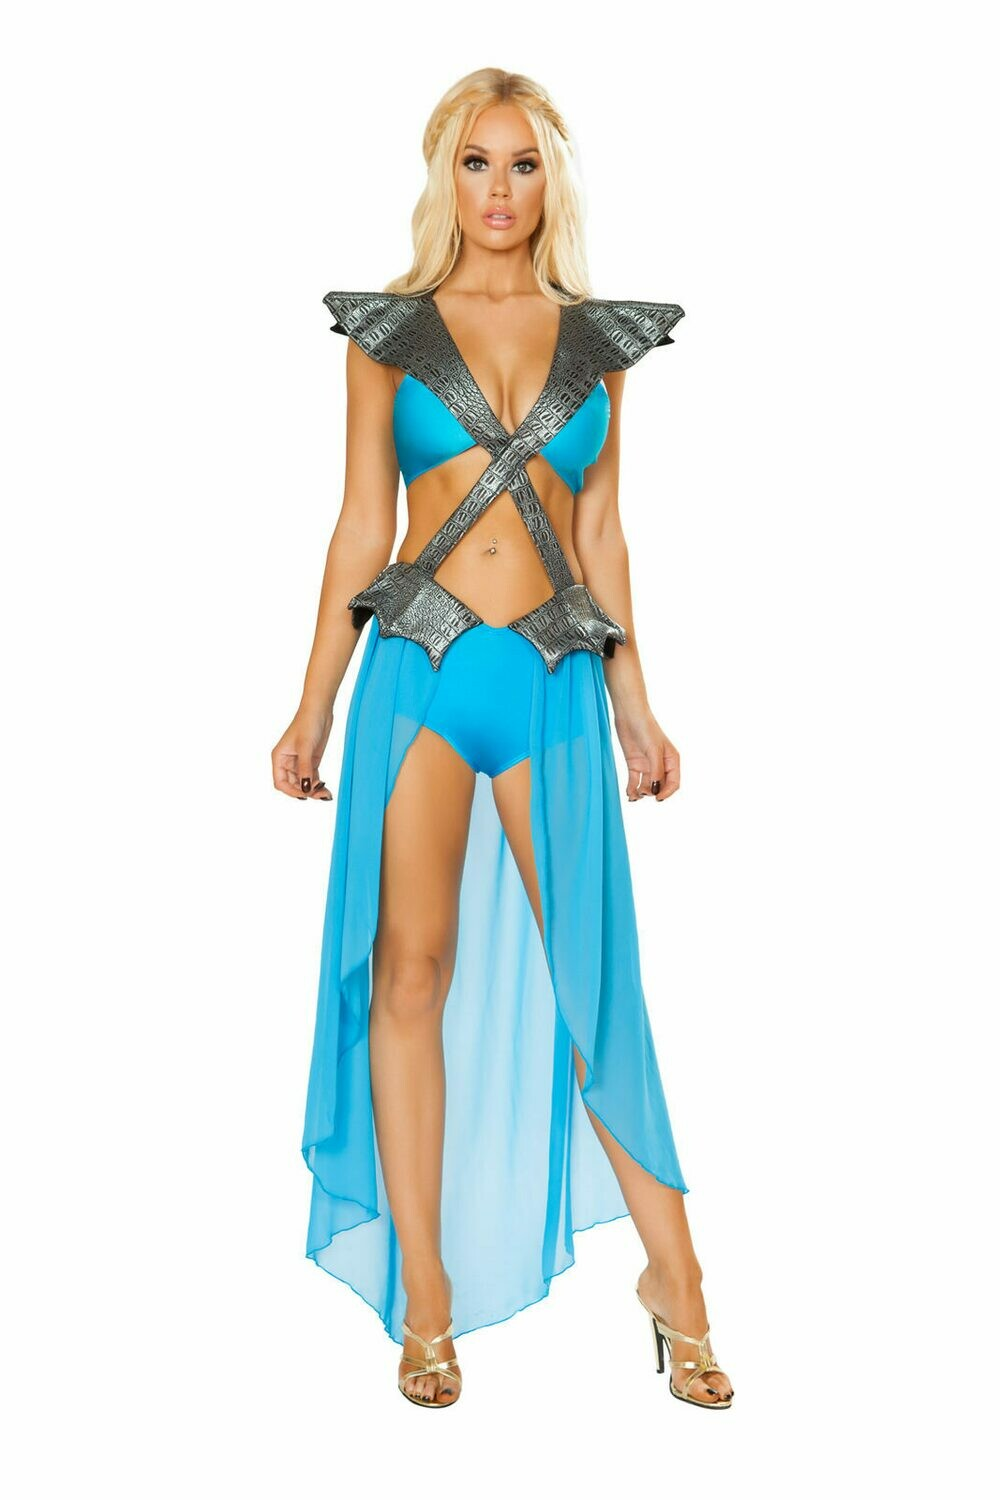 COSTUMES| SUPERHEROS| 1pc Mother of Dragons